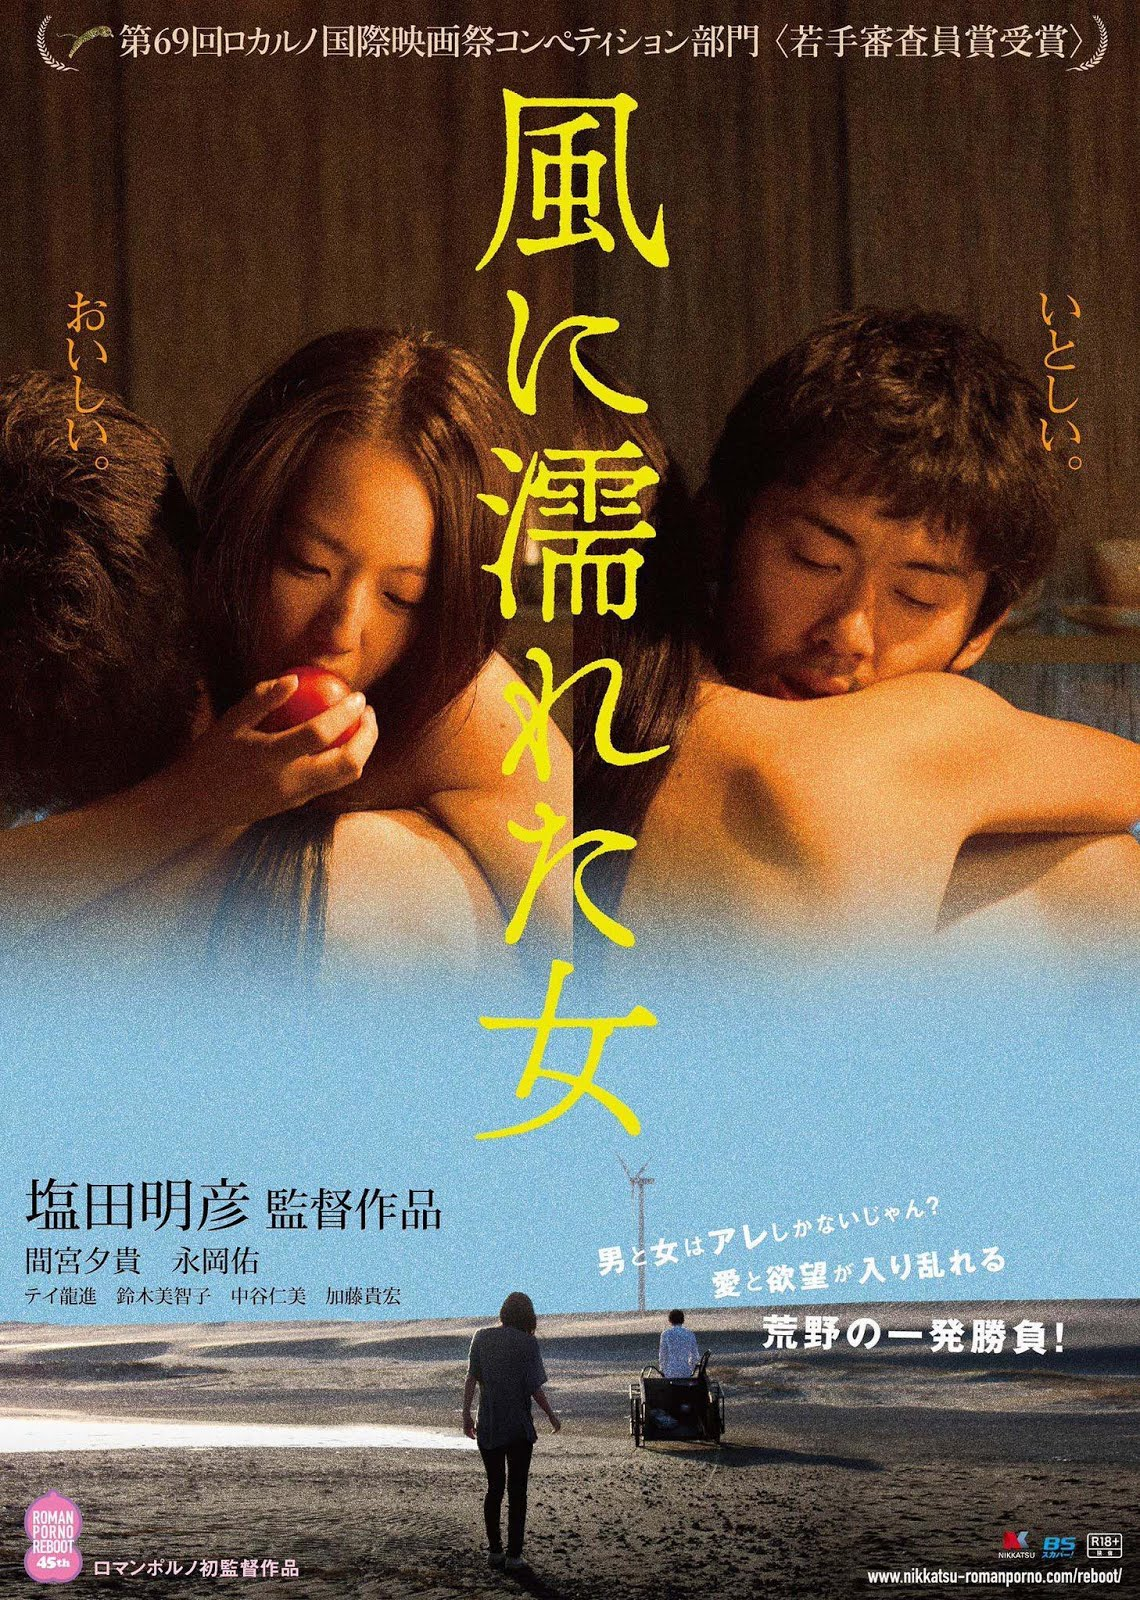 18+ Wet Woman in the Wind (2016) full hd English Subtitles Japanese 480p BluRay 250MB